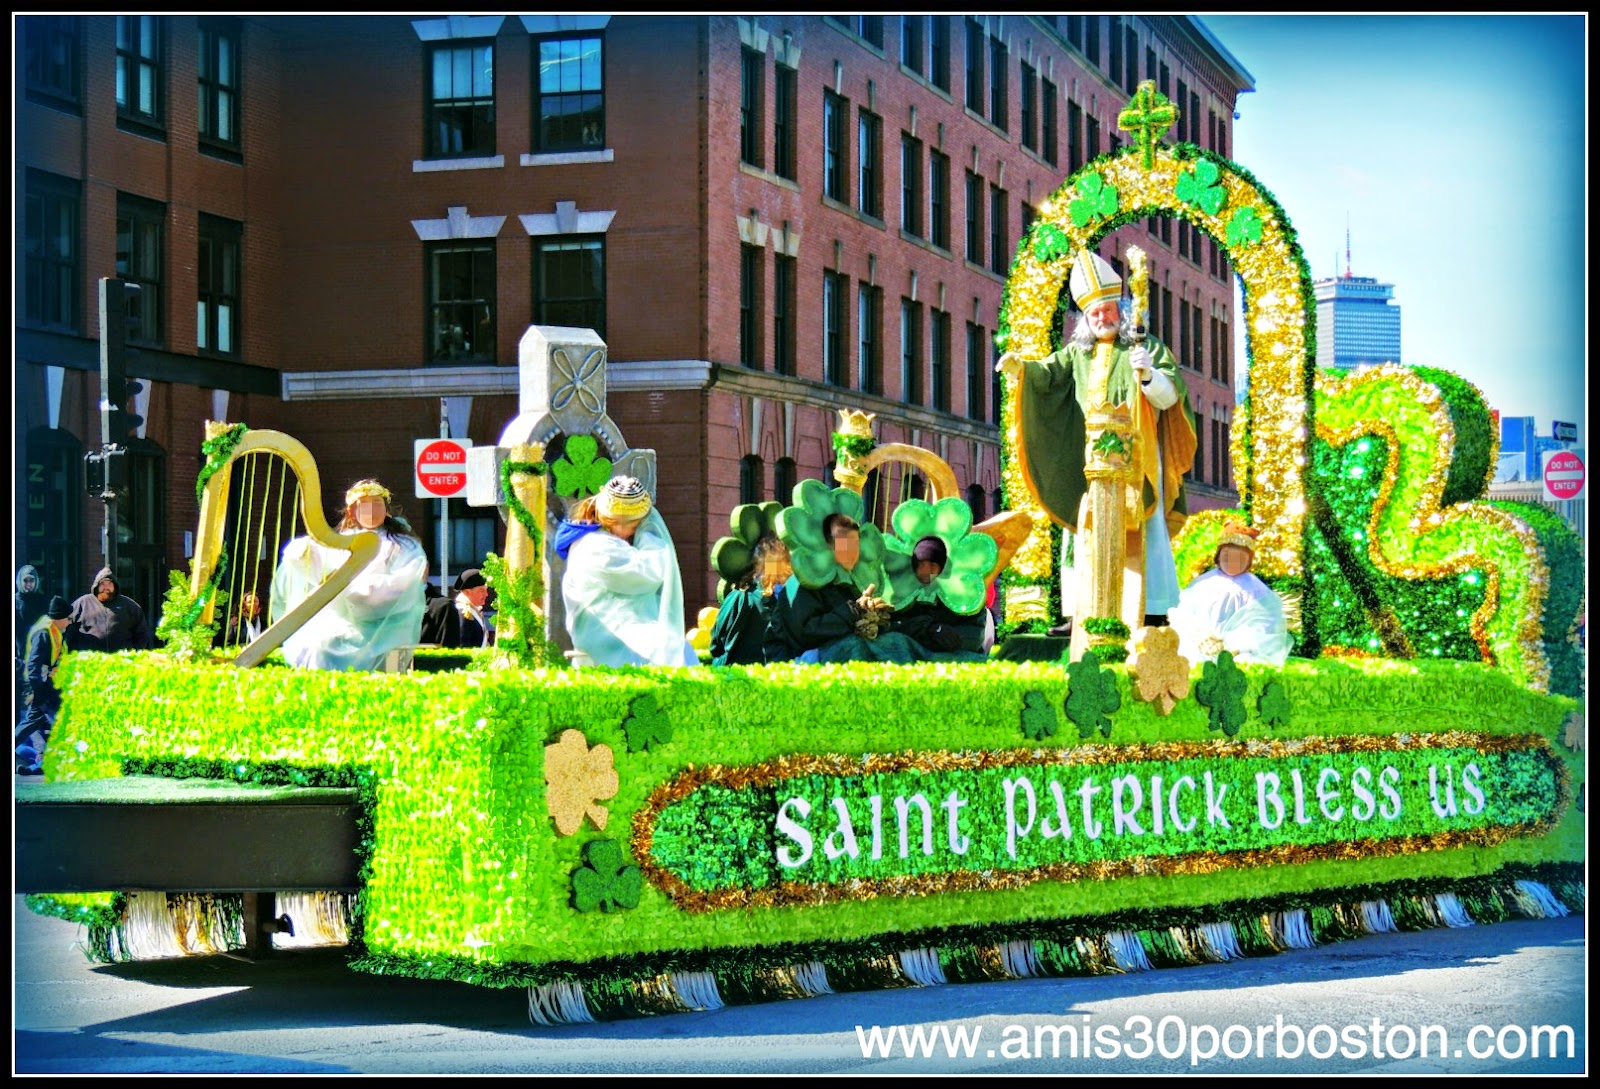 Saint Patrick en Boston